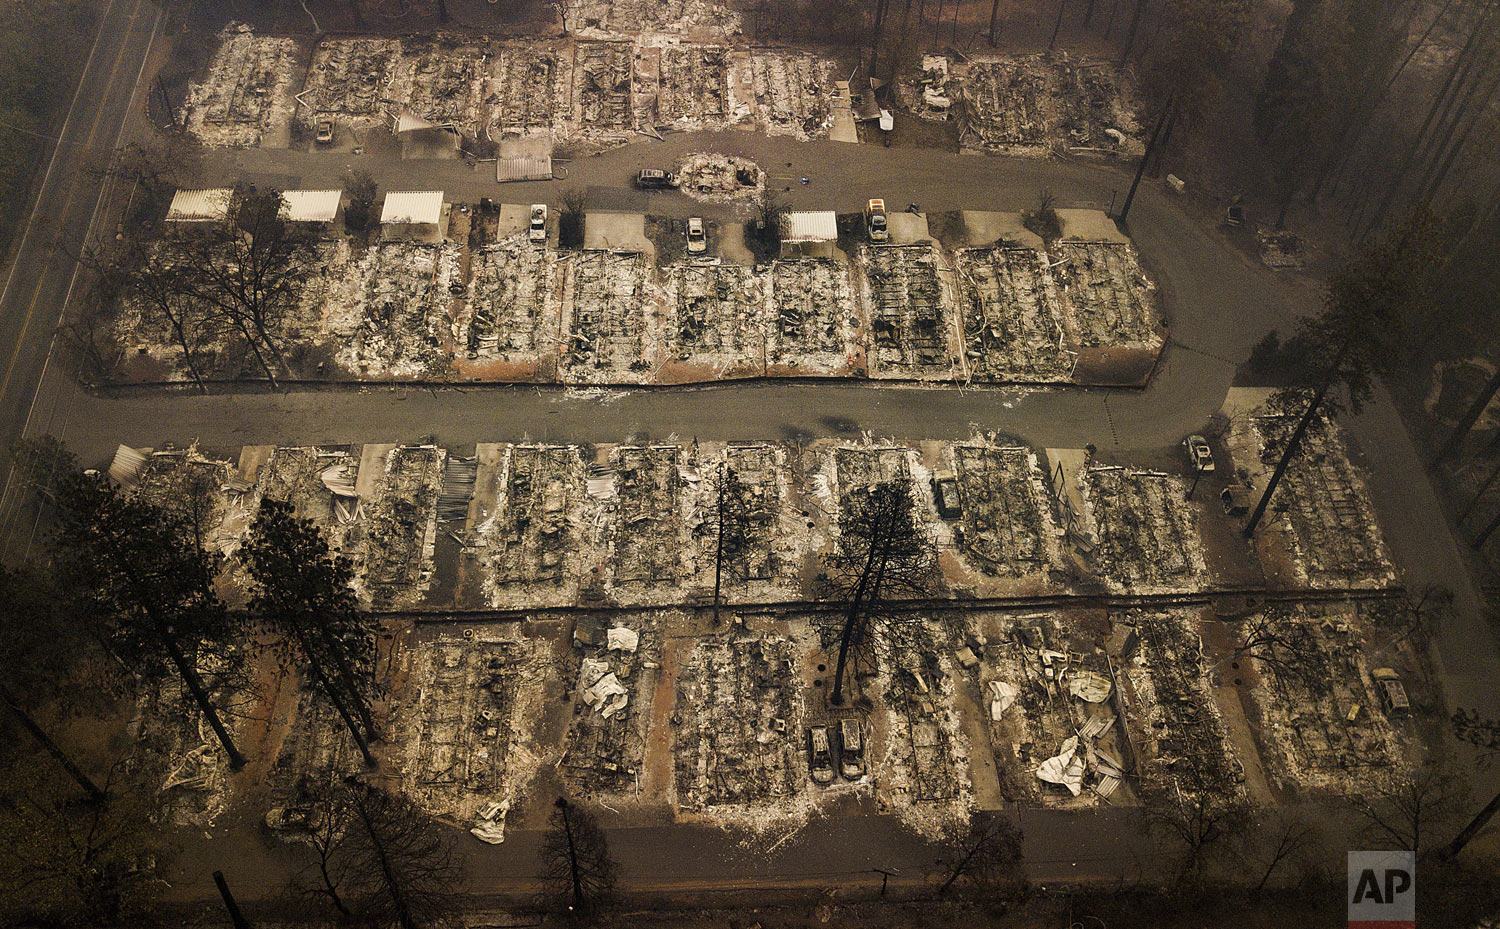 This aerial photo shows the remains of residences leveled by the wildfire in Paradise, Calif., on Thursday, Nov. 15, 2018.  (AP Photo/Noah Berger)